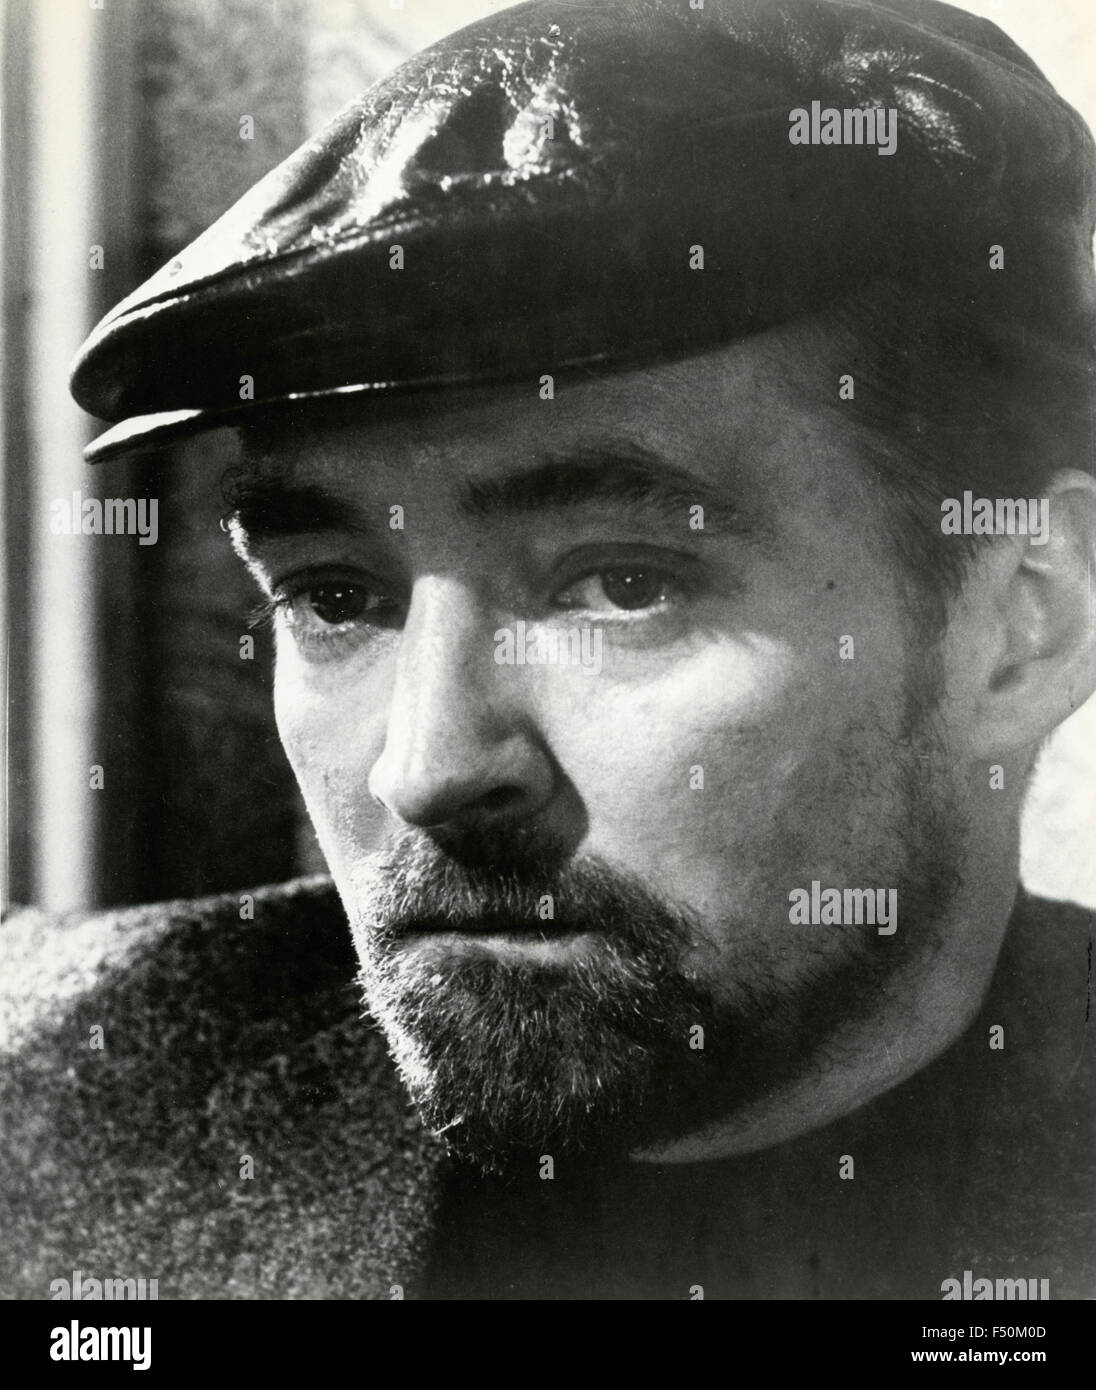 The actor Oskar Werner in a scene from the film 'The Spy Who Came in from the Cold' , UK 1963 - Stock Image